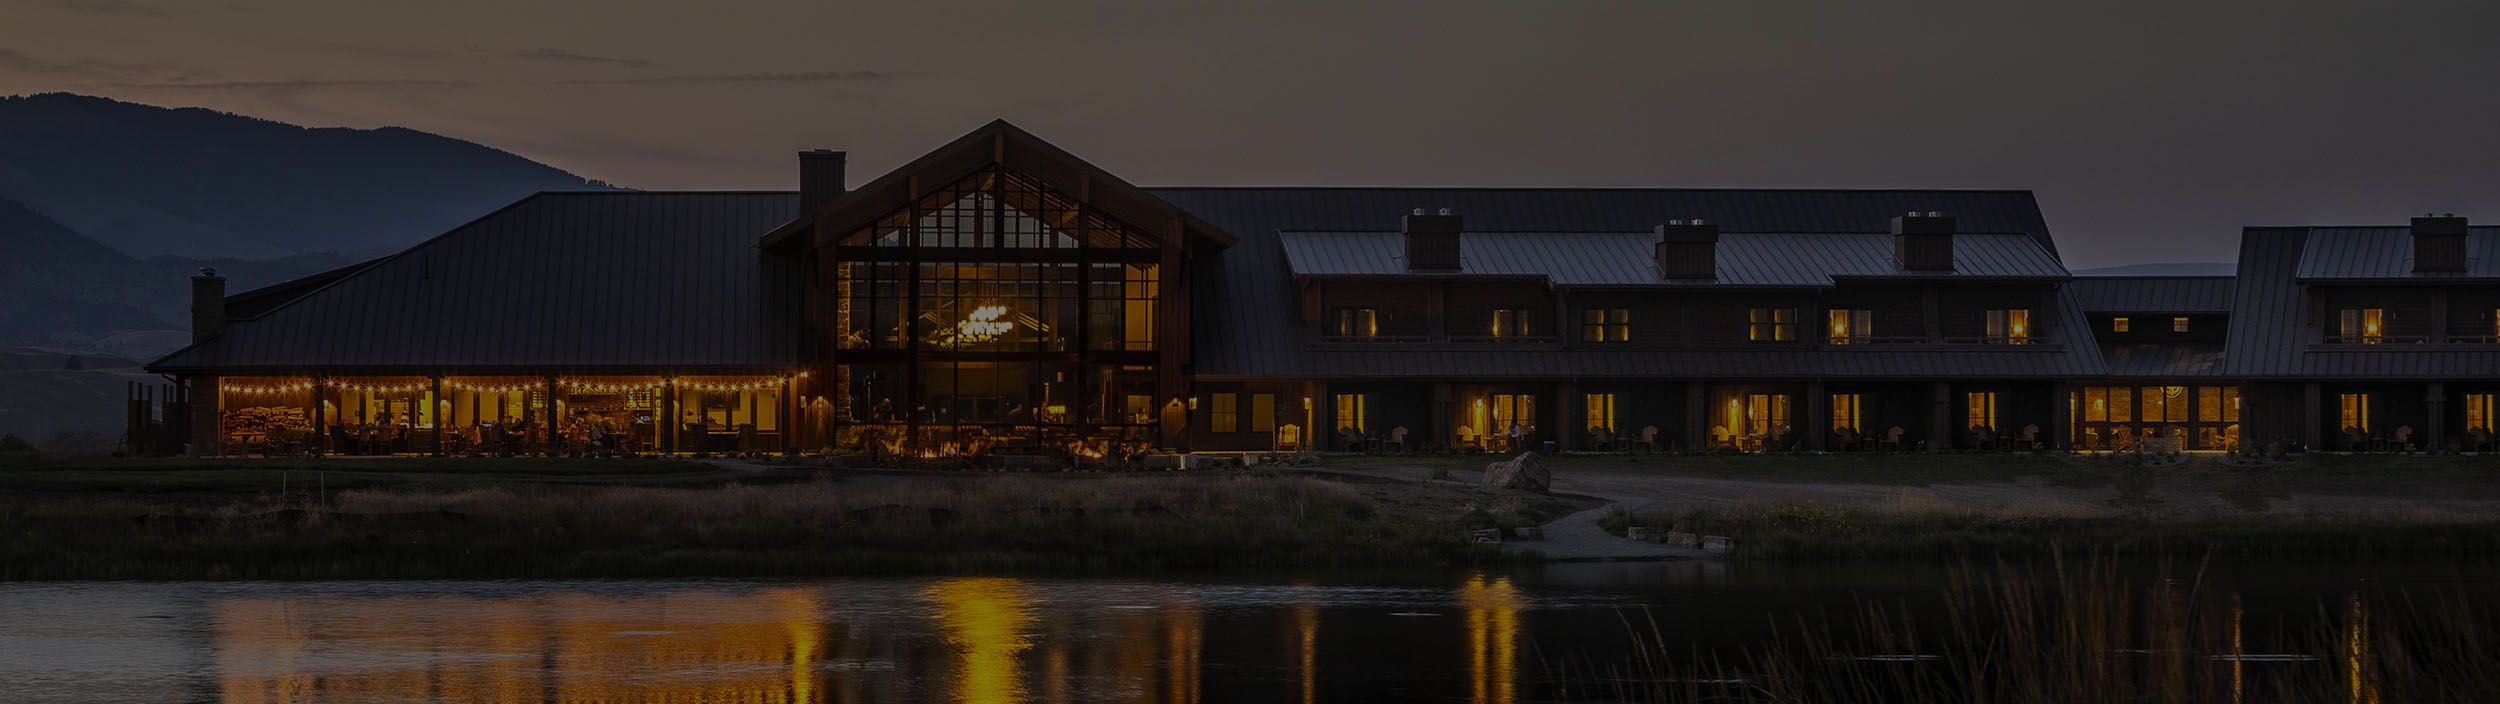 Sage Lodge and pond at dusk